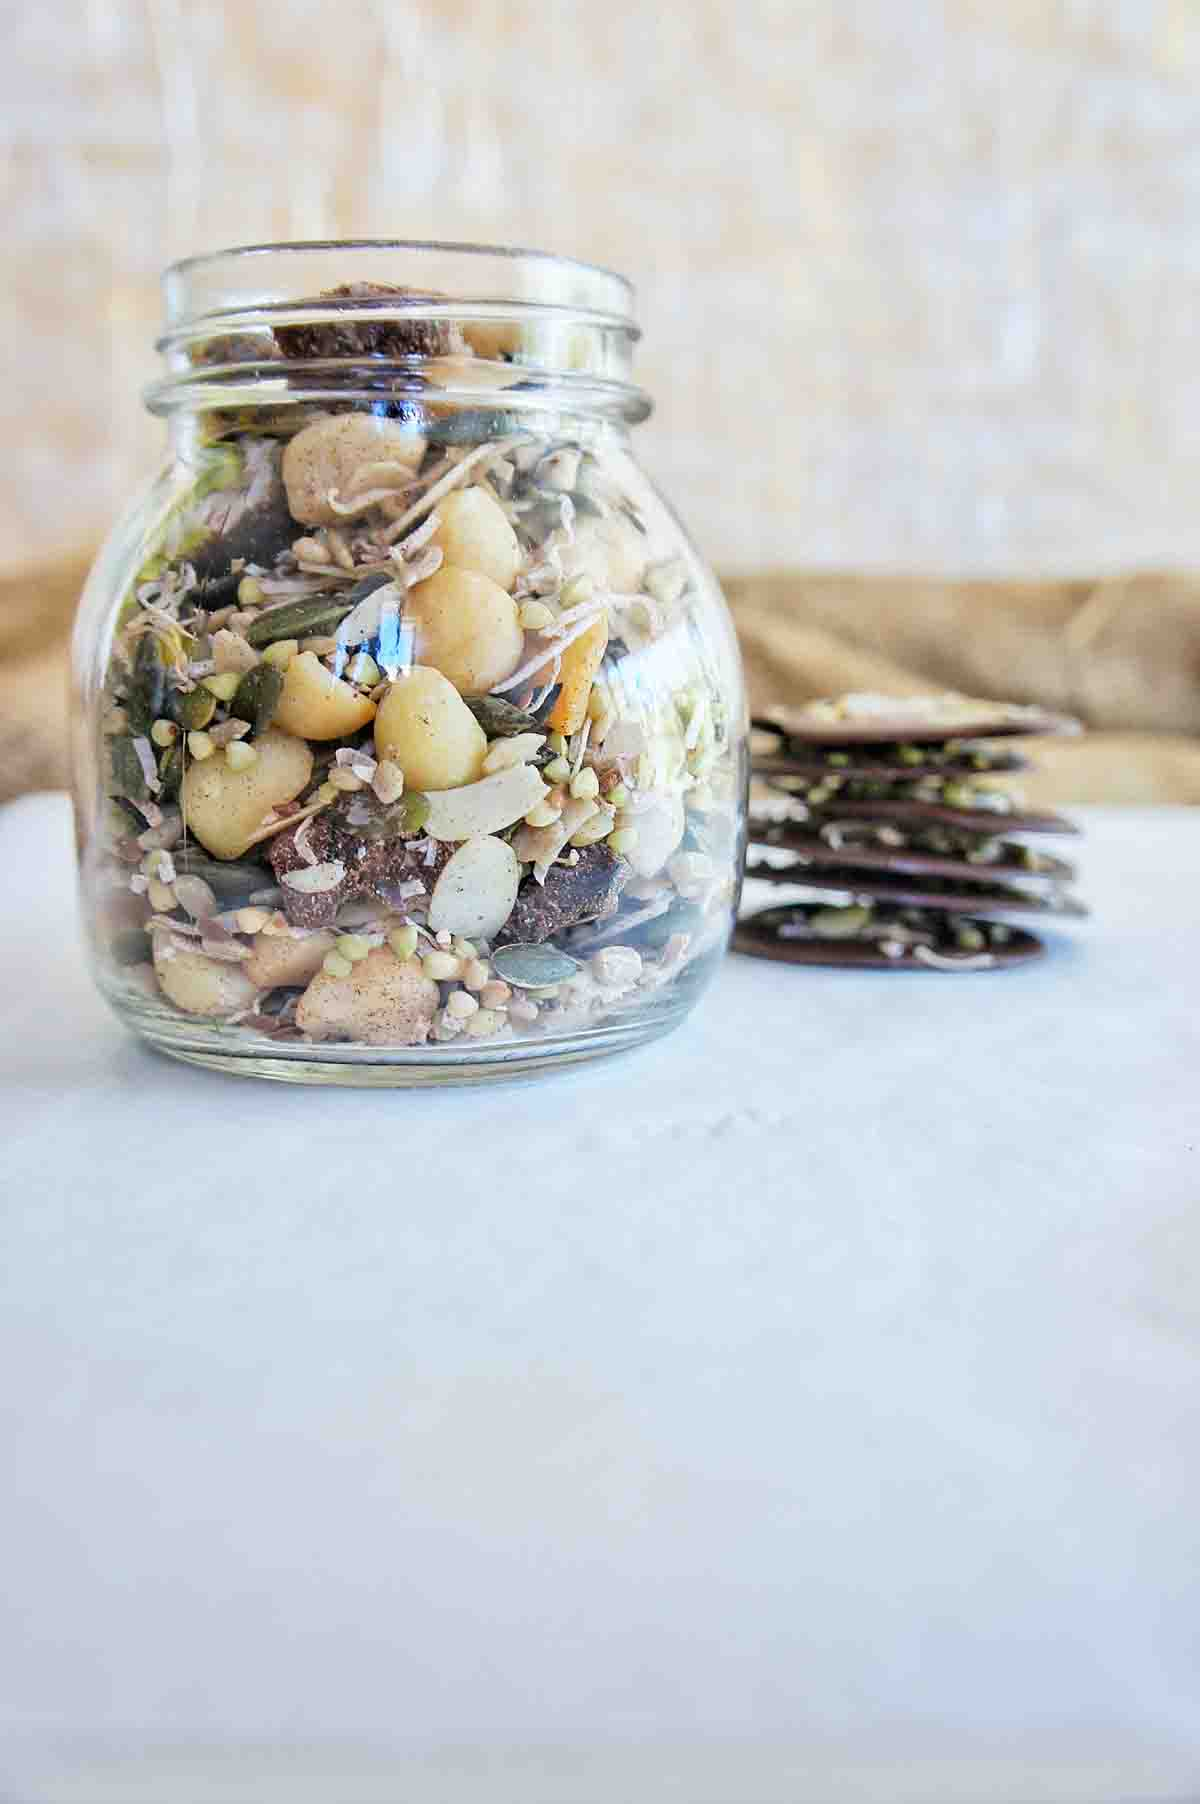 Chocolate Granola Bark with a focus on a glass jar with granola in it